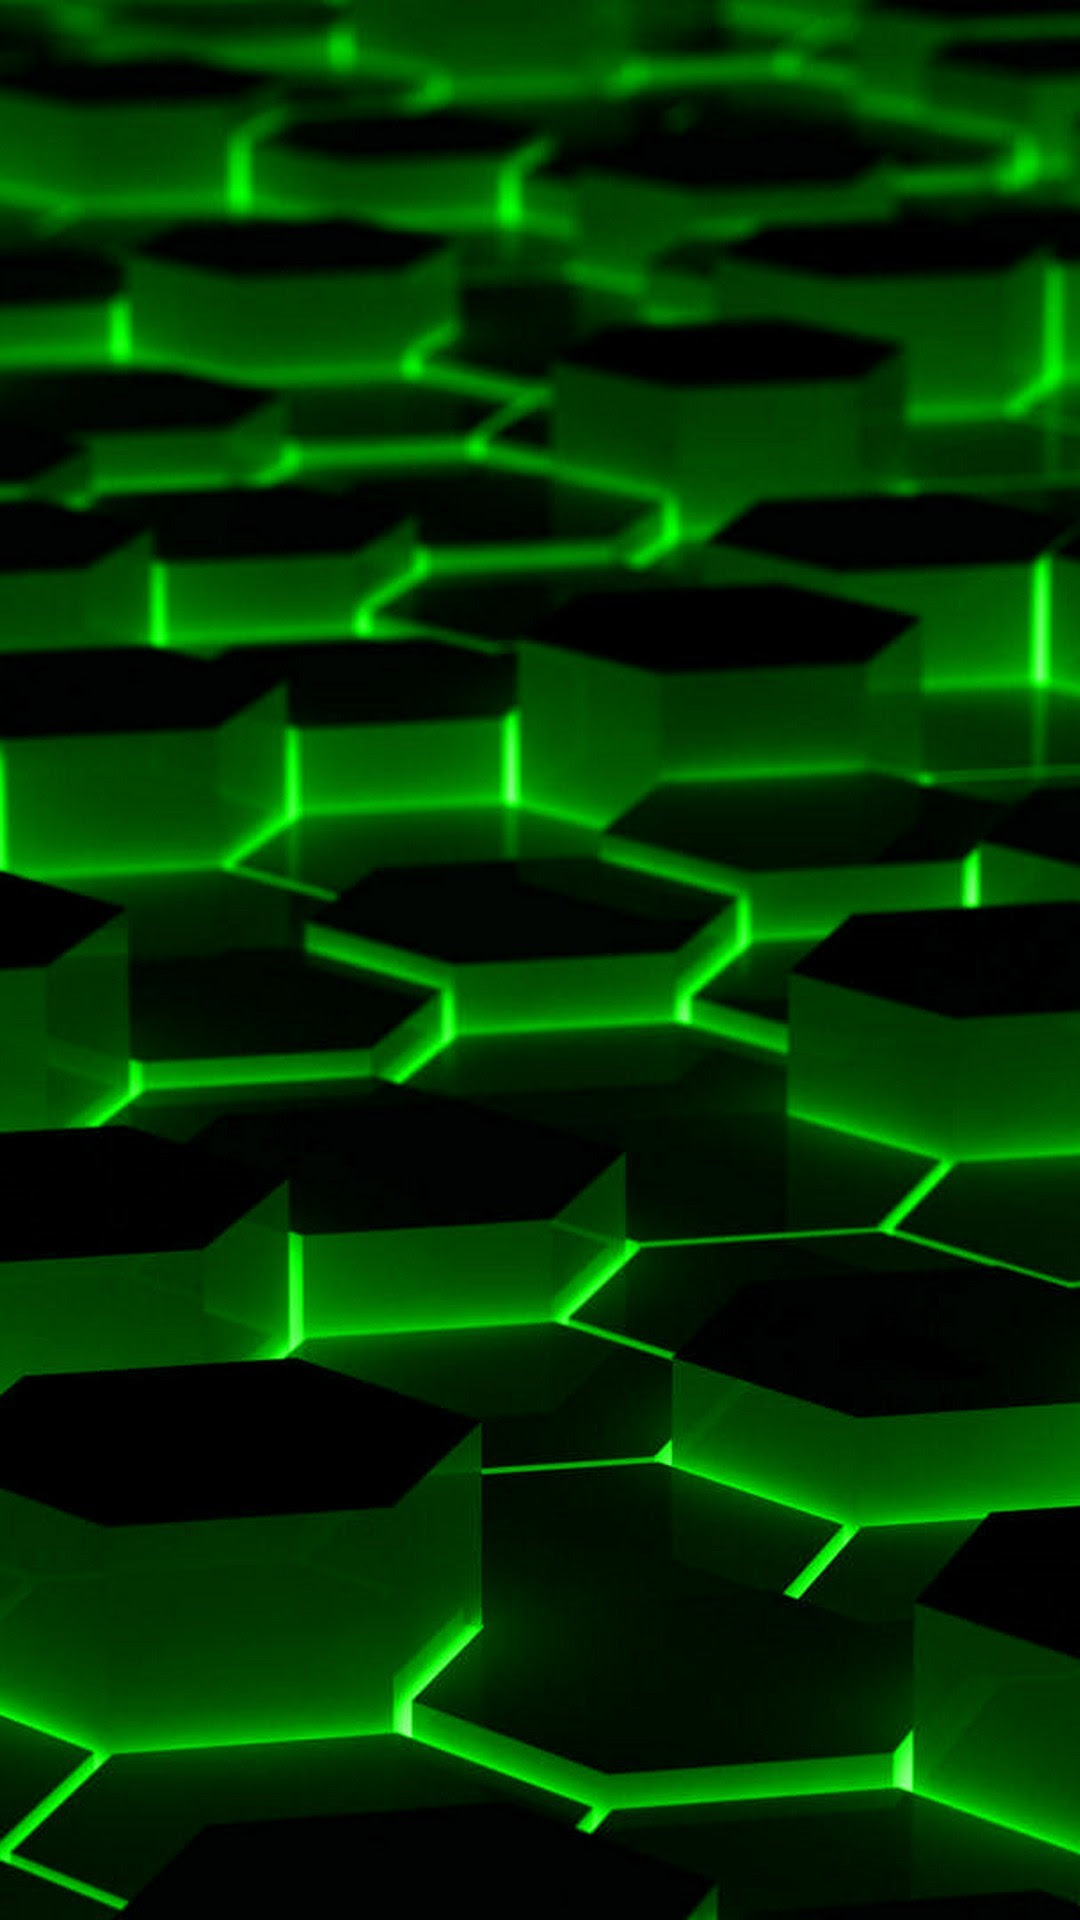 Green Neon Wallpaper (83+ images)